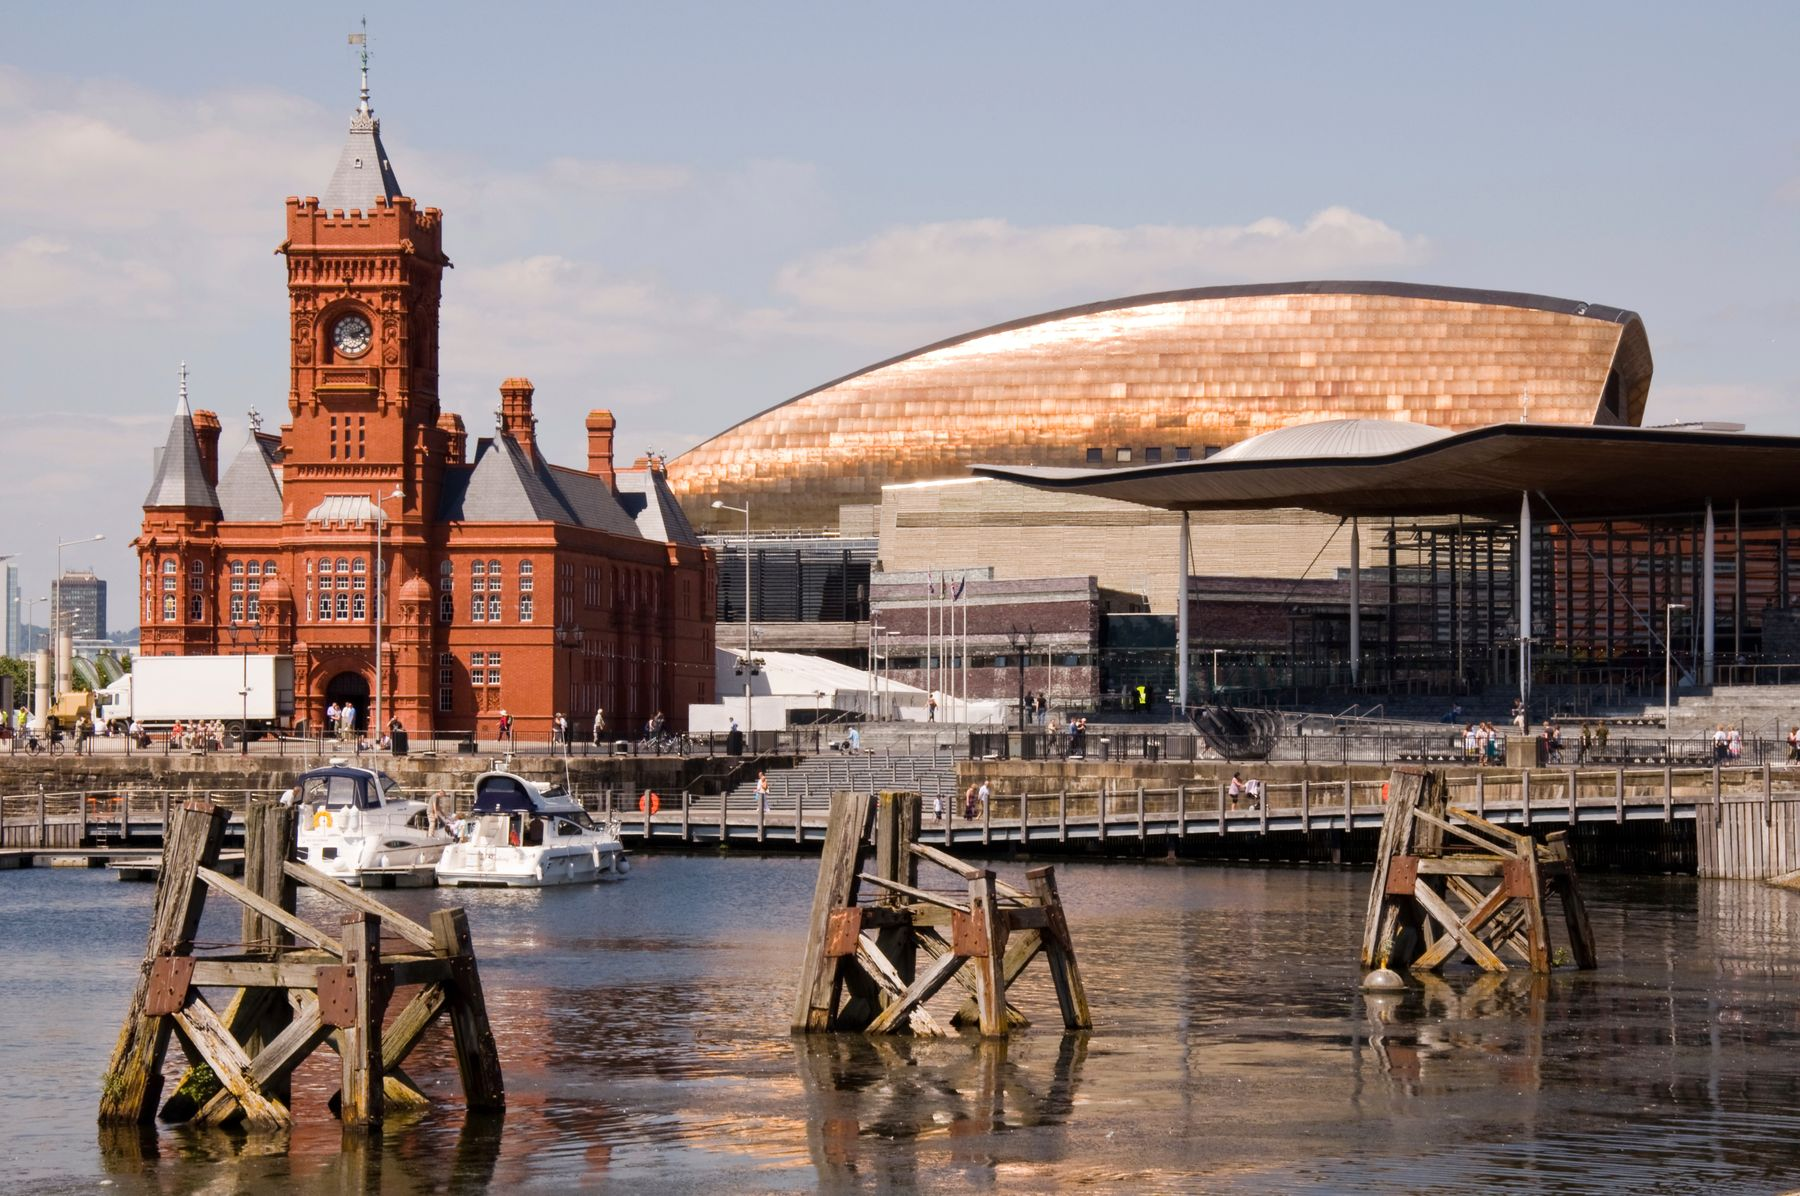 Picture shows Cardiff, one of the best places to visit in the UK, with the Pierhead building, the docks and the Wales Millennium Centre.